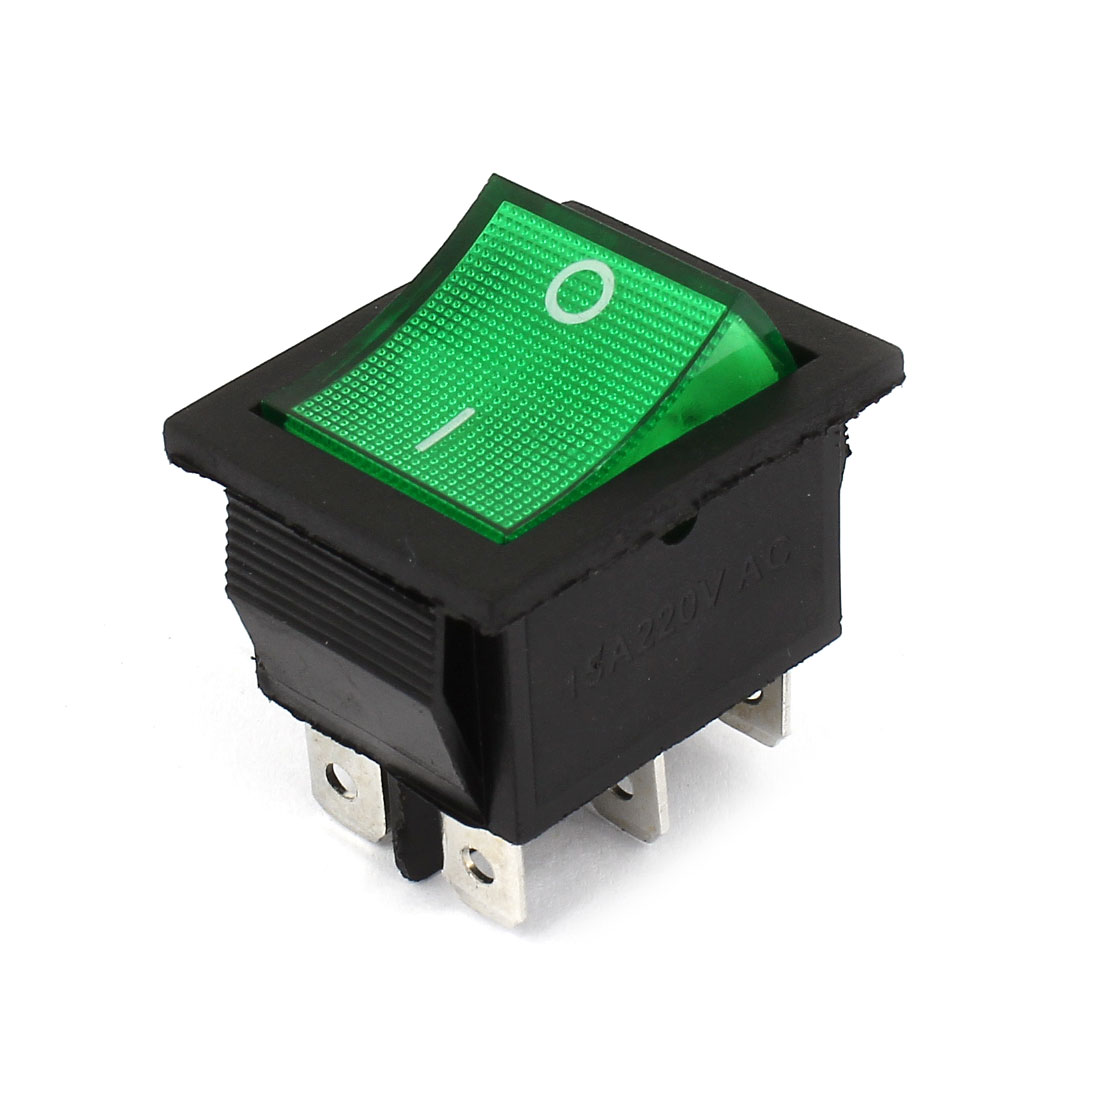 AC220V 15A 6 Pin DPDT ON/OFF 2 Position Green Indicator Rocker Switch